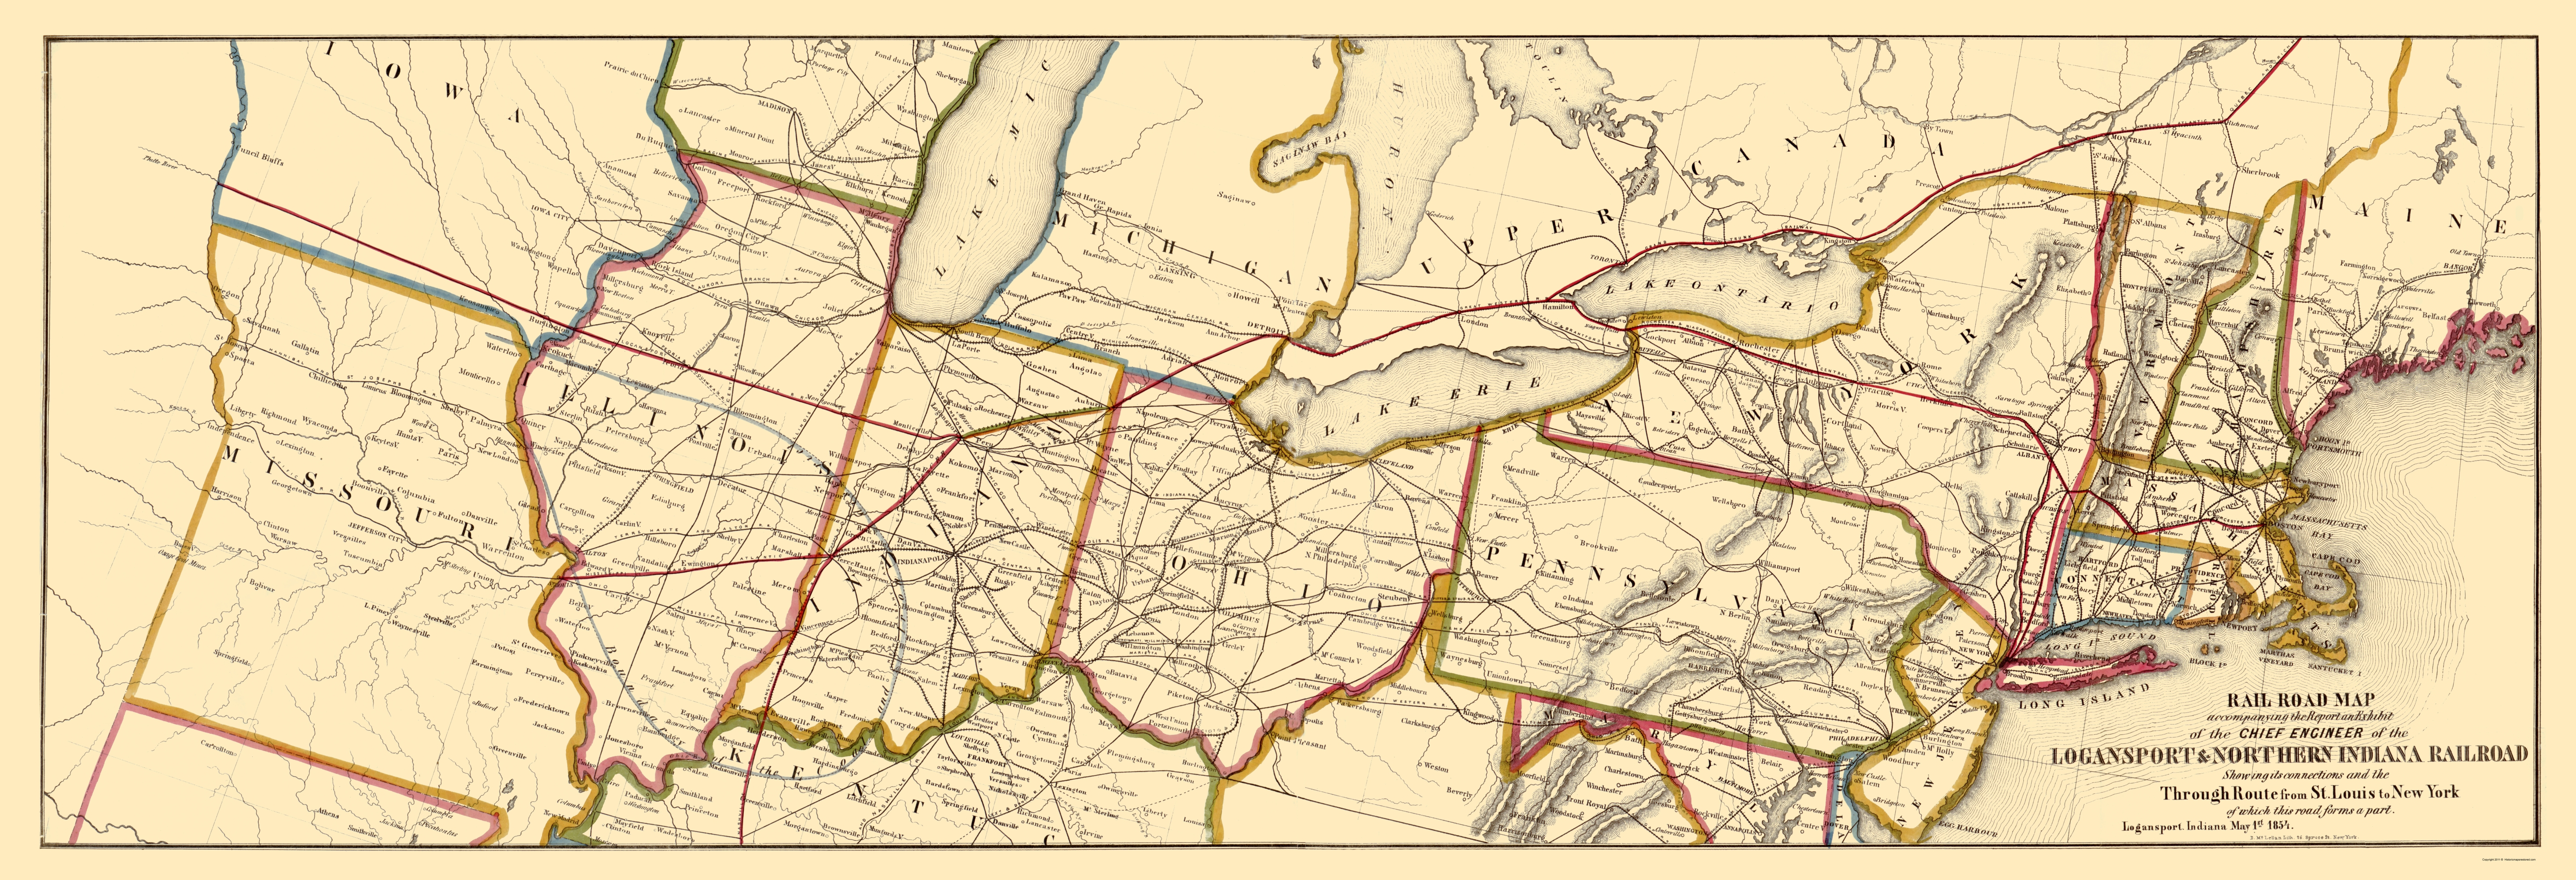 Old Map Logansport And Northern Indiana Railroad 1854 - 1854-us-map